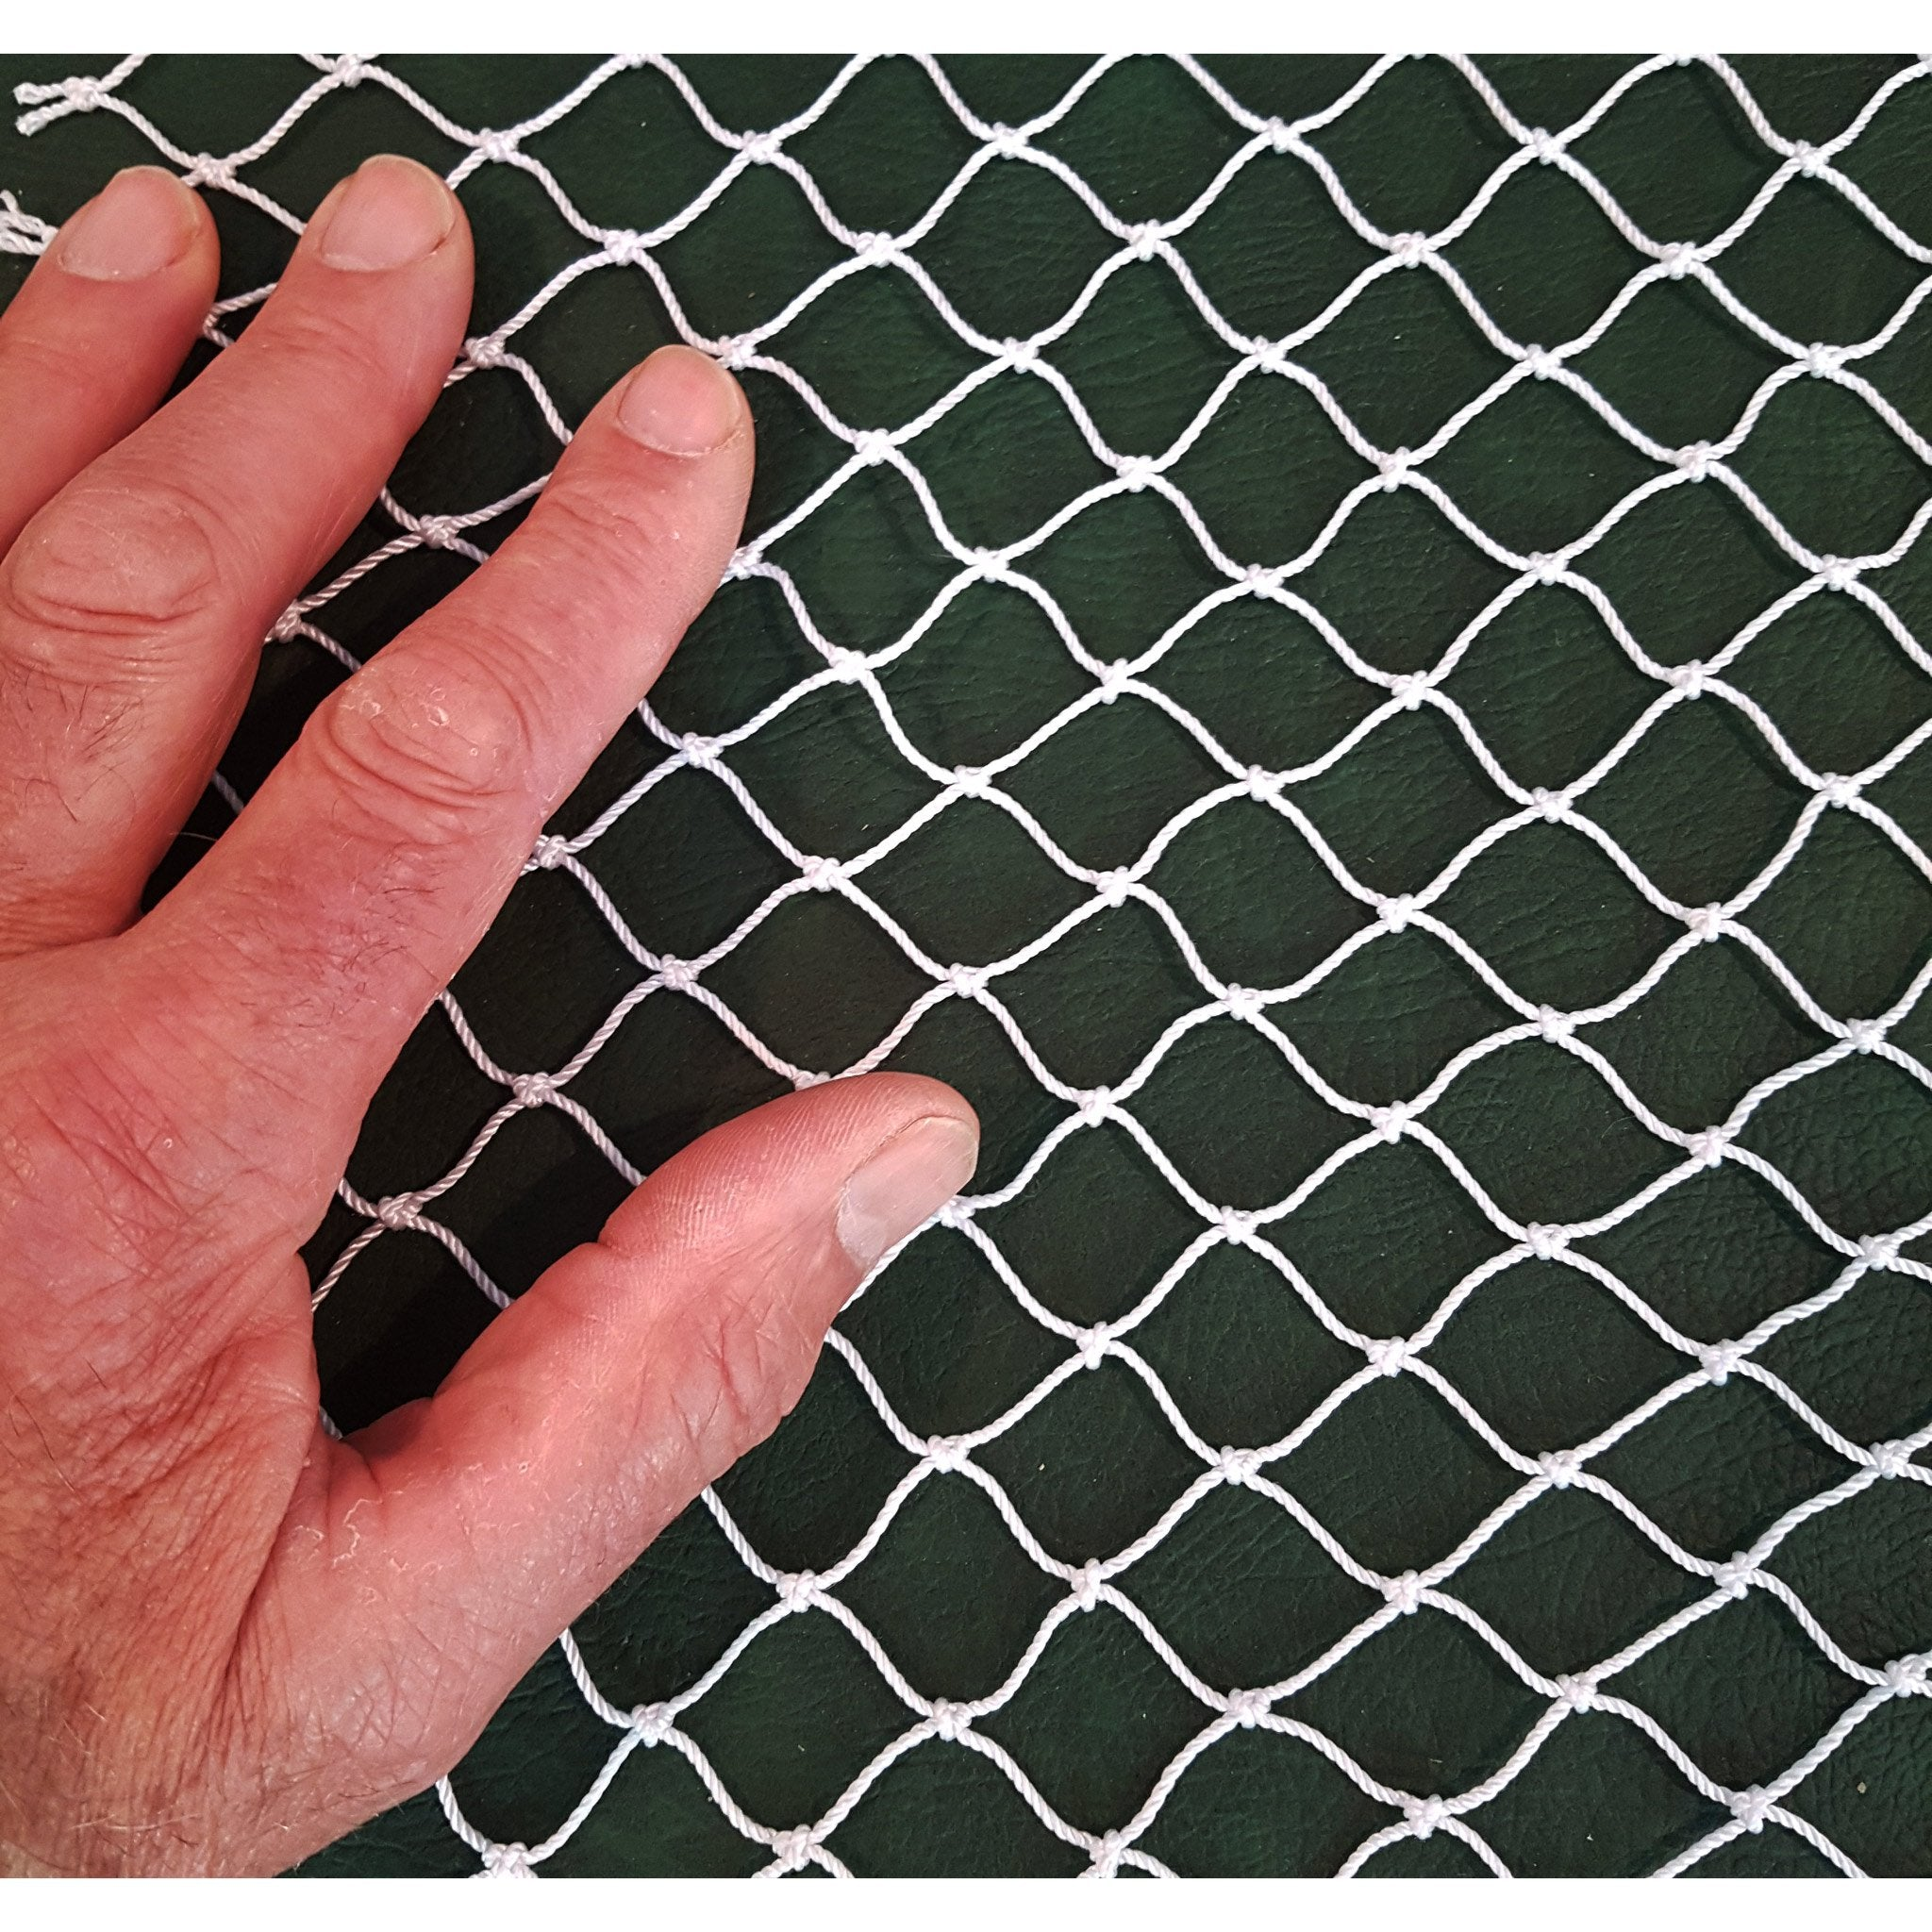 Locker Netting 1 mm x 20 mm x 2 m - Arthur Beale